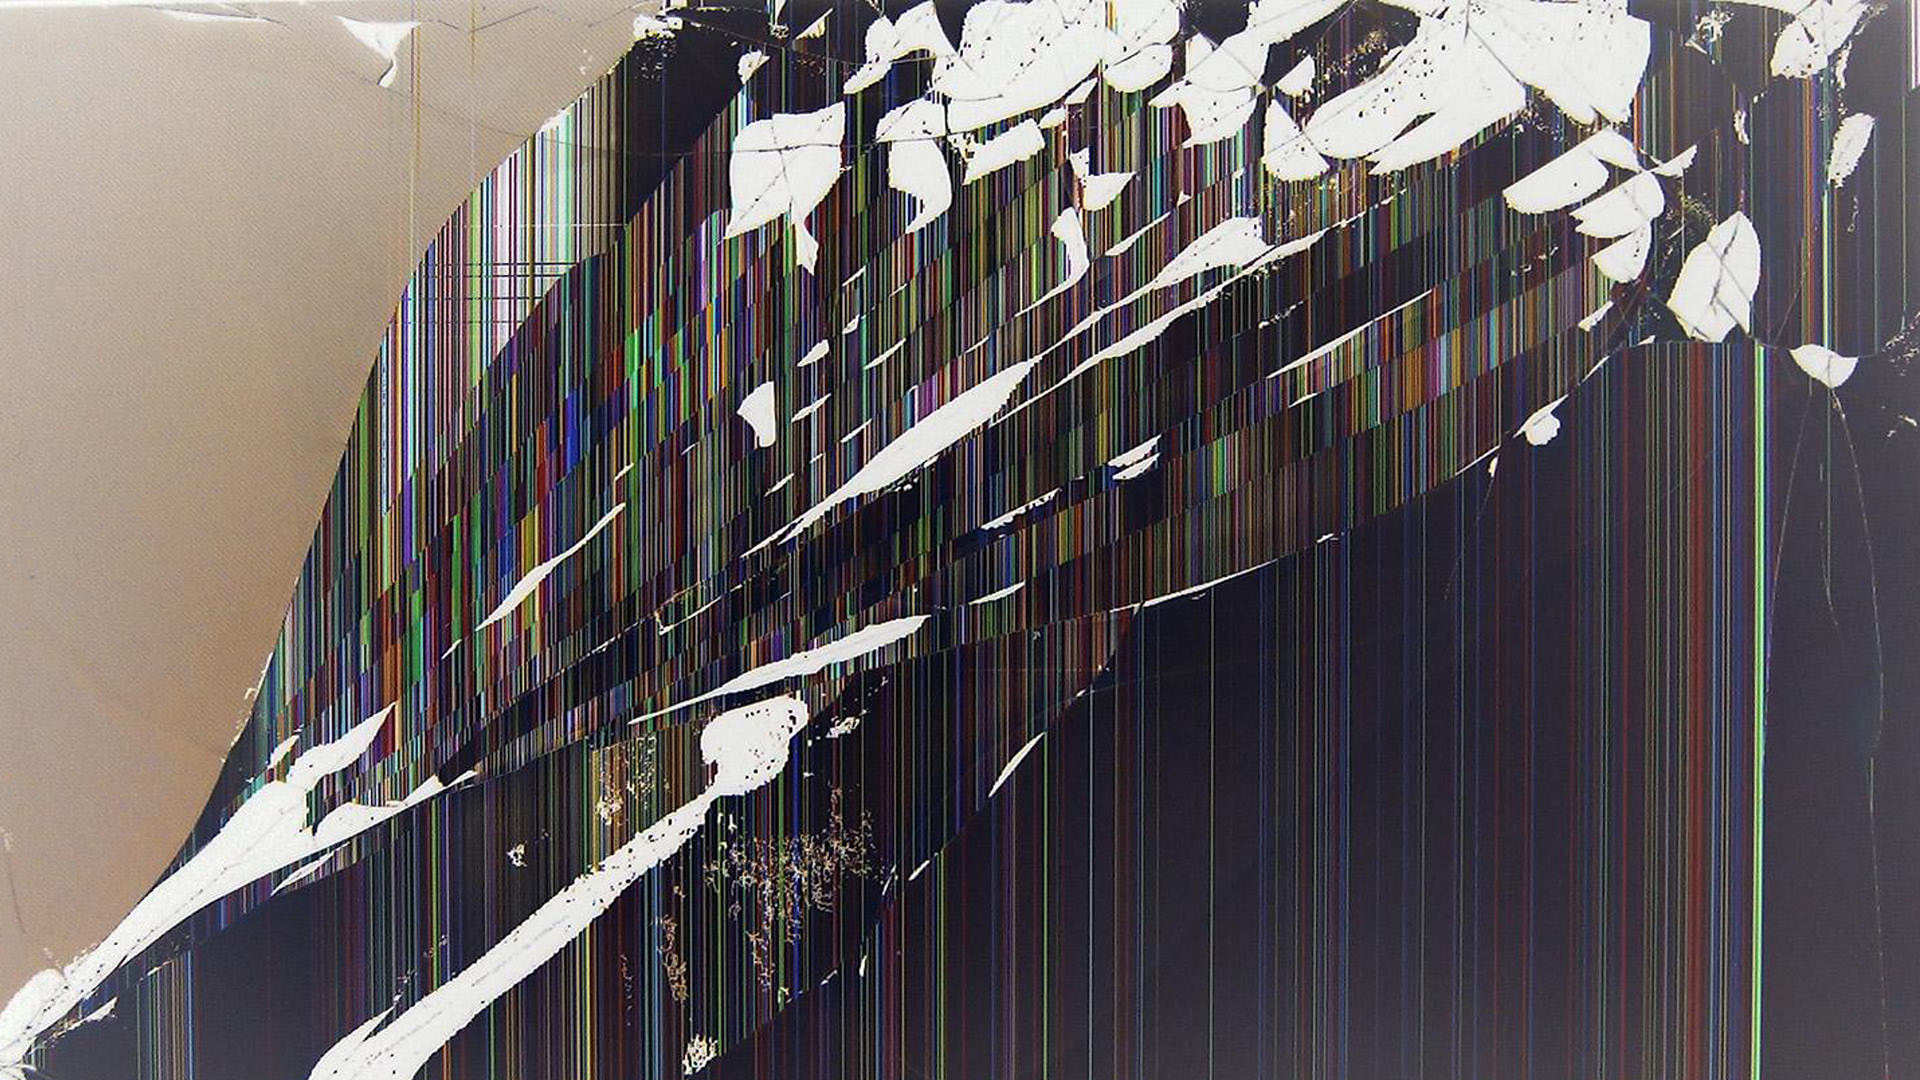 6 broken screen wallpapers prank for windows and mac laptops - Cool screensavers for cracked screens ...